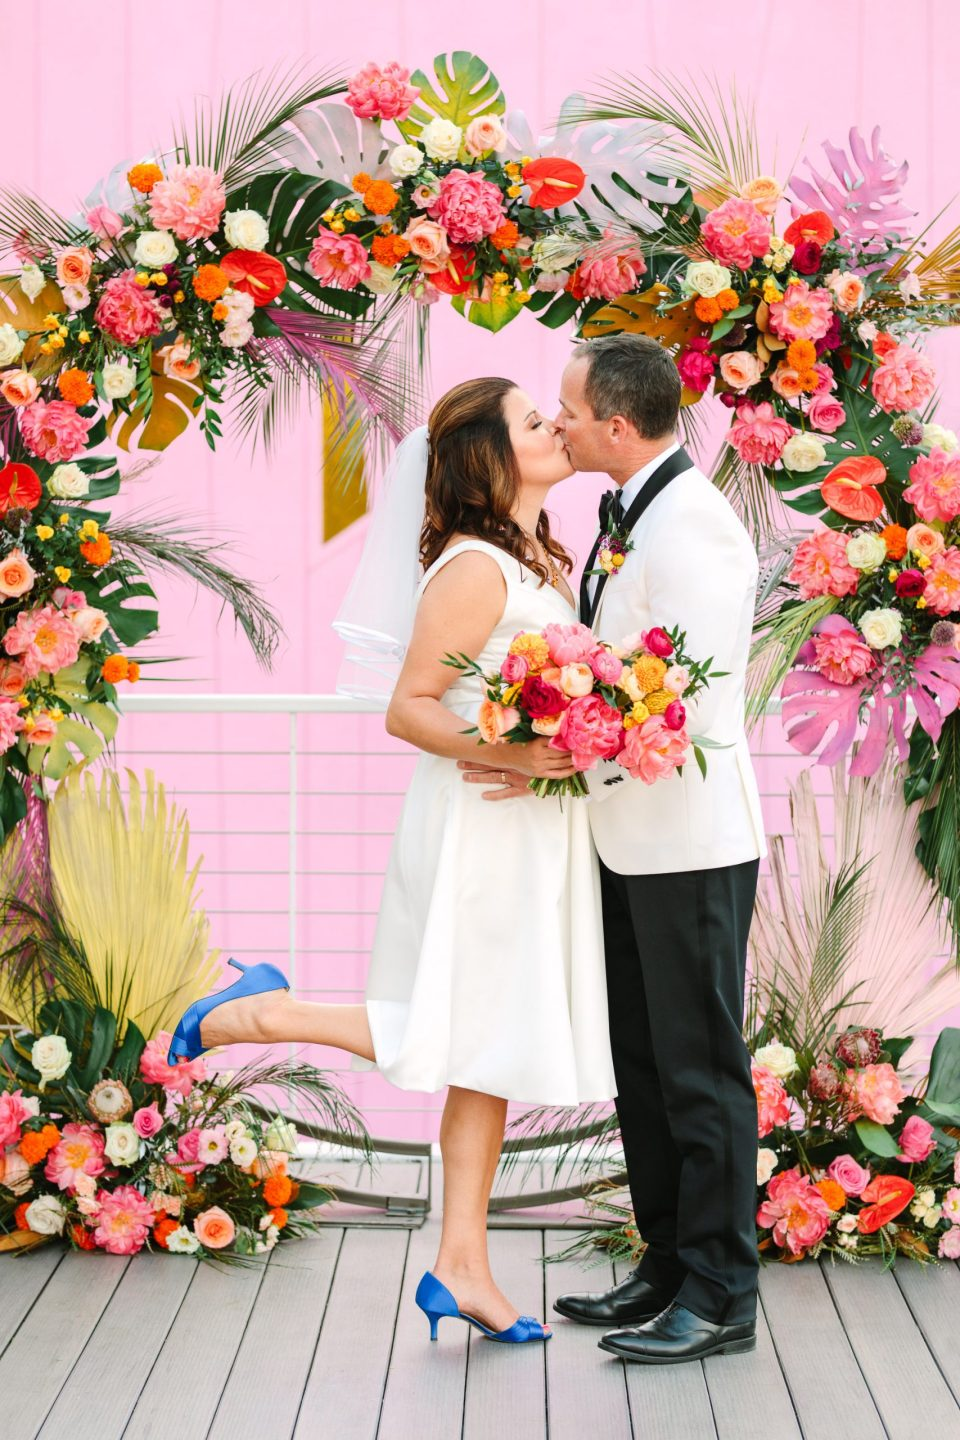 Couple kissing at colorful wedding ceremony arch www.marycostaweddings.com